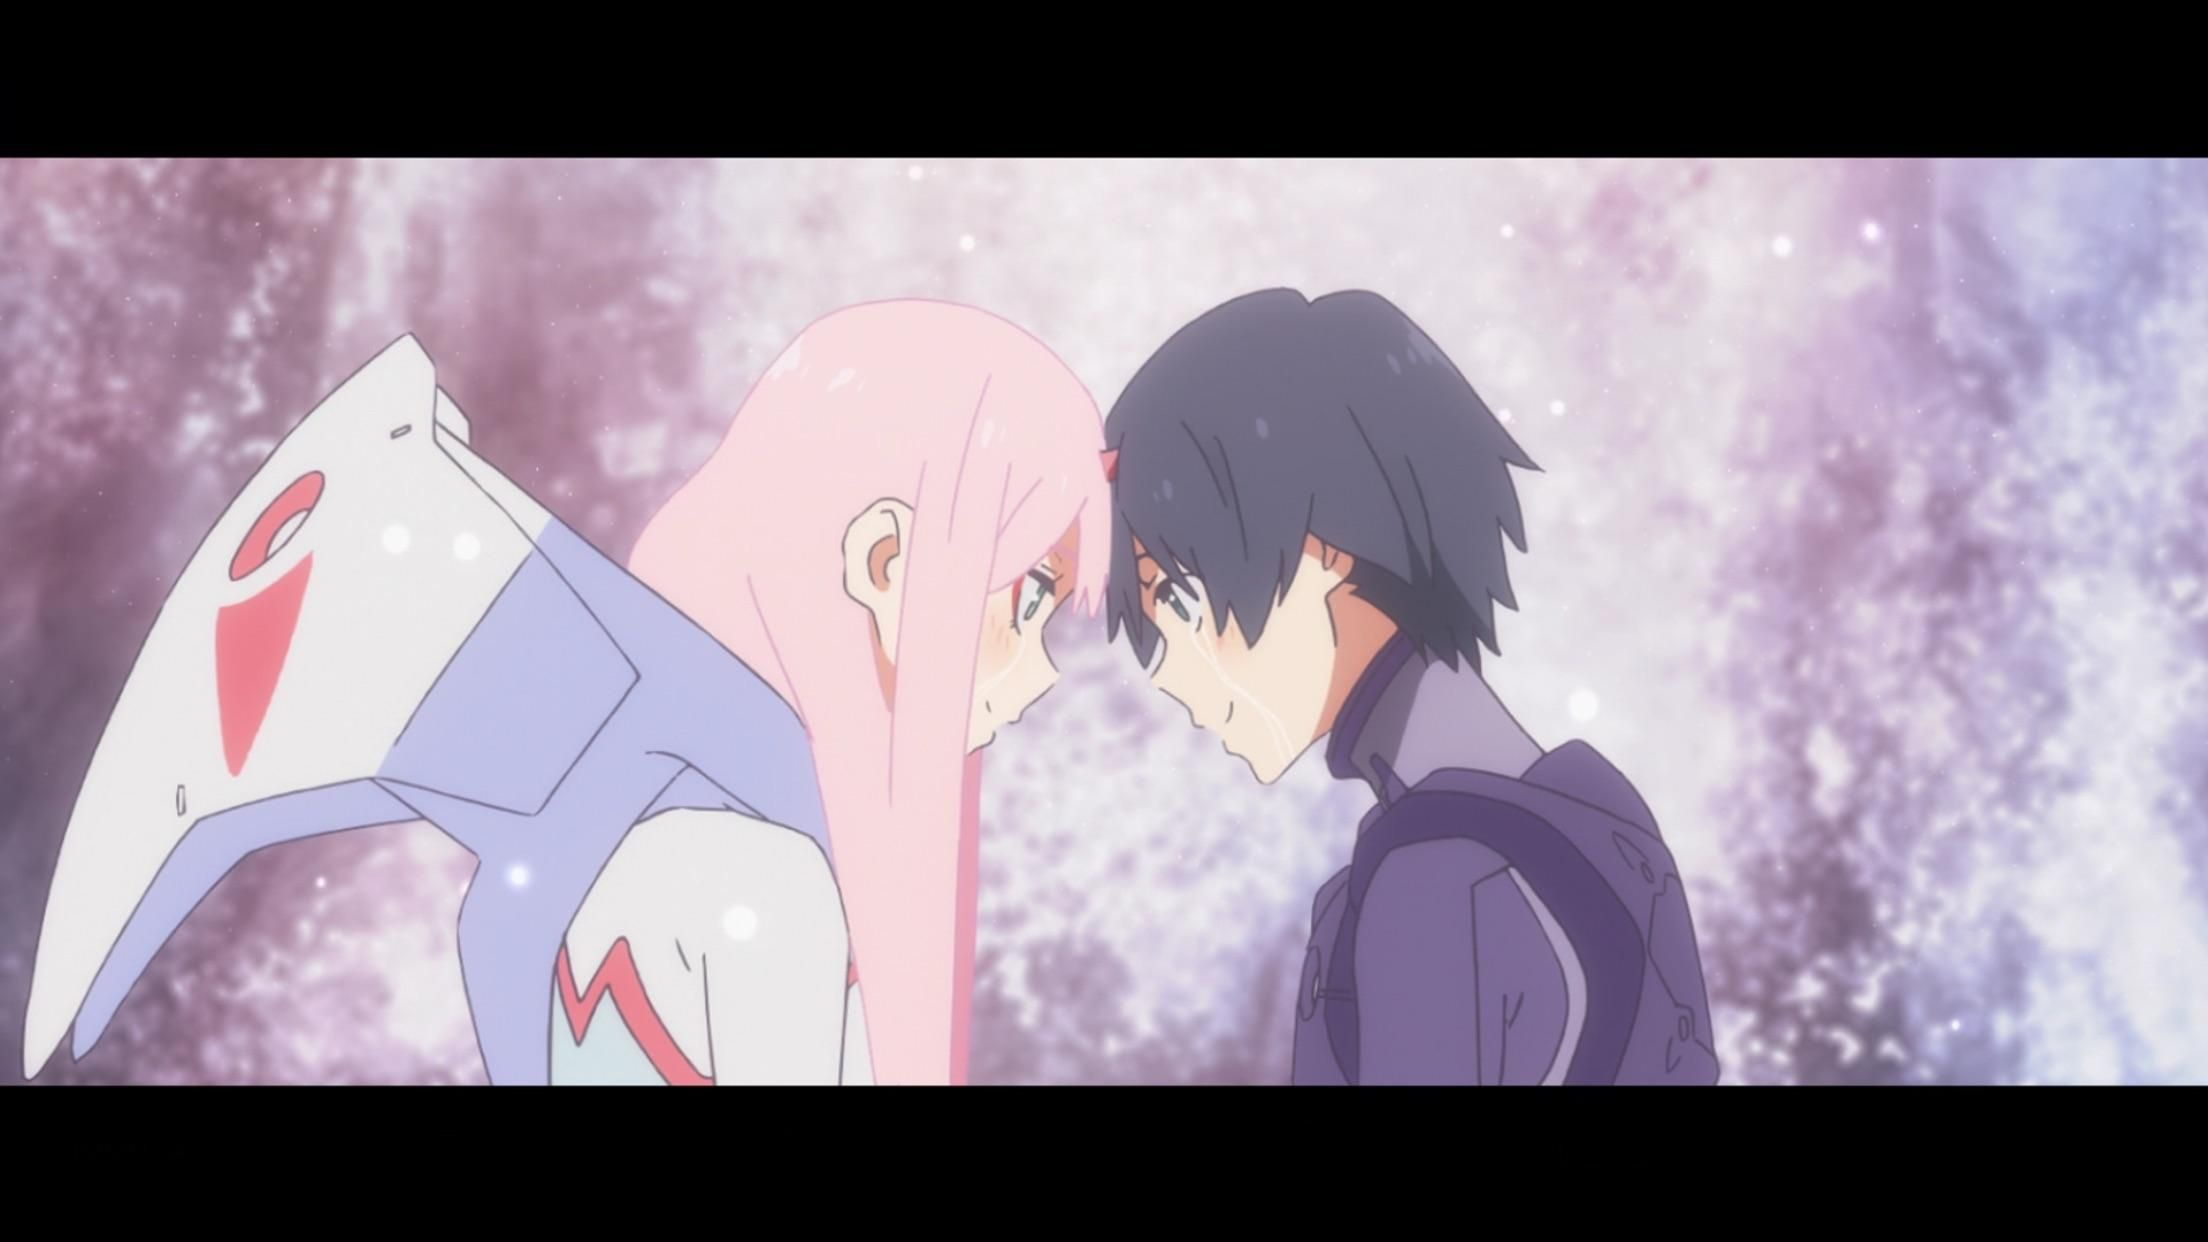 Reddit The Front Page Of The Internet Darling In The Franxx